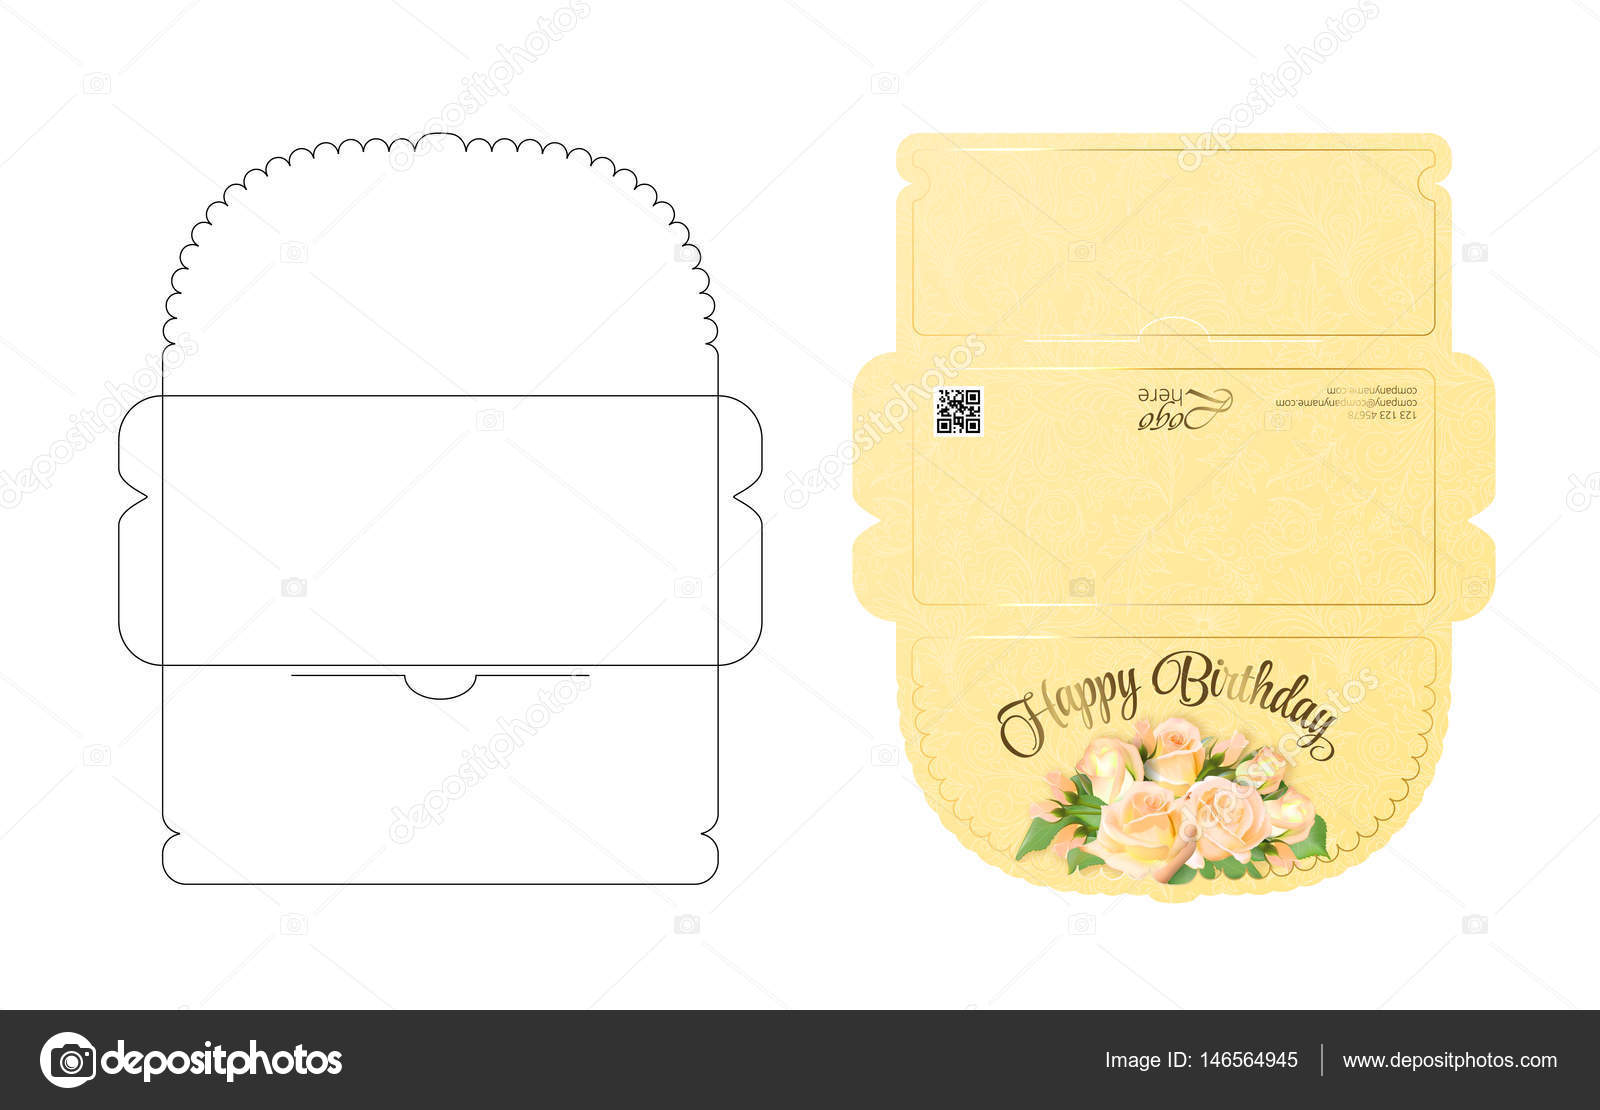 Envelope template with flap design Easy to fold Ready to print - money gift envelope template